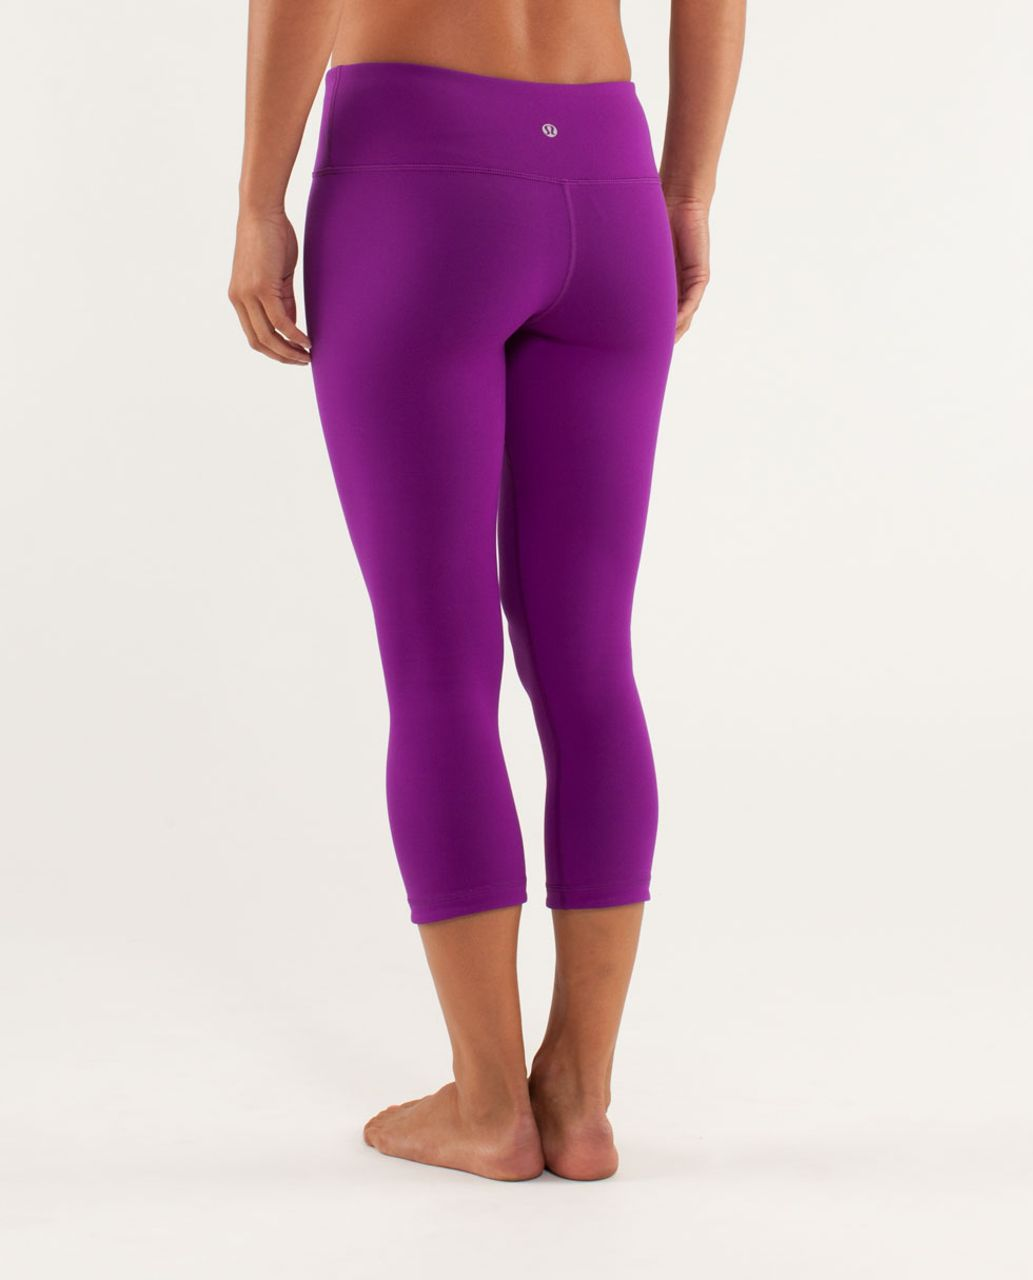 Lululemon Wunder Under Crop *Reversible - Tender Violet / Black